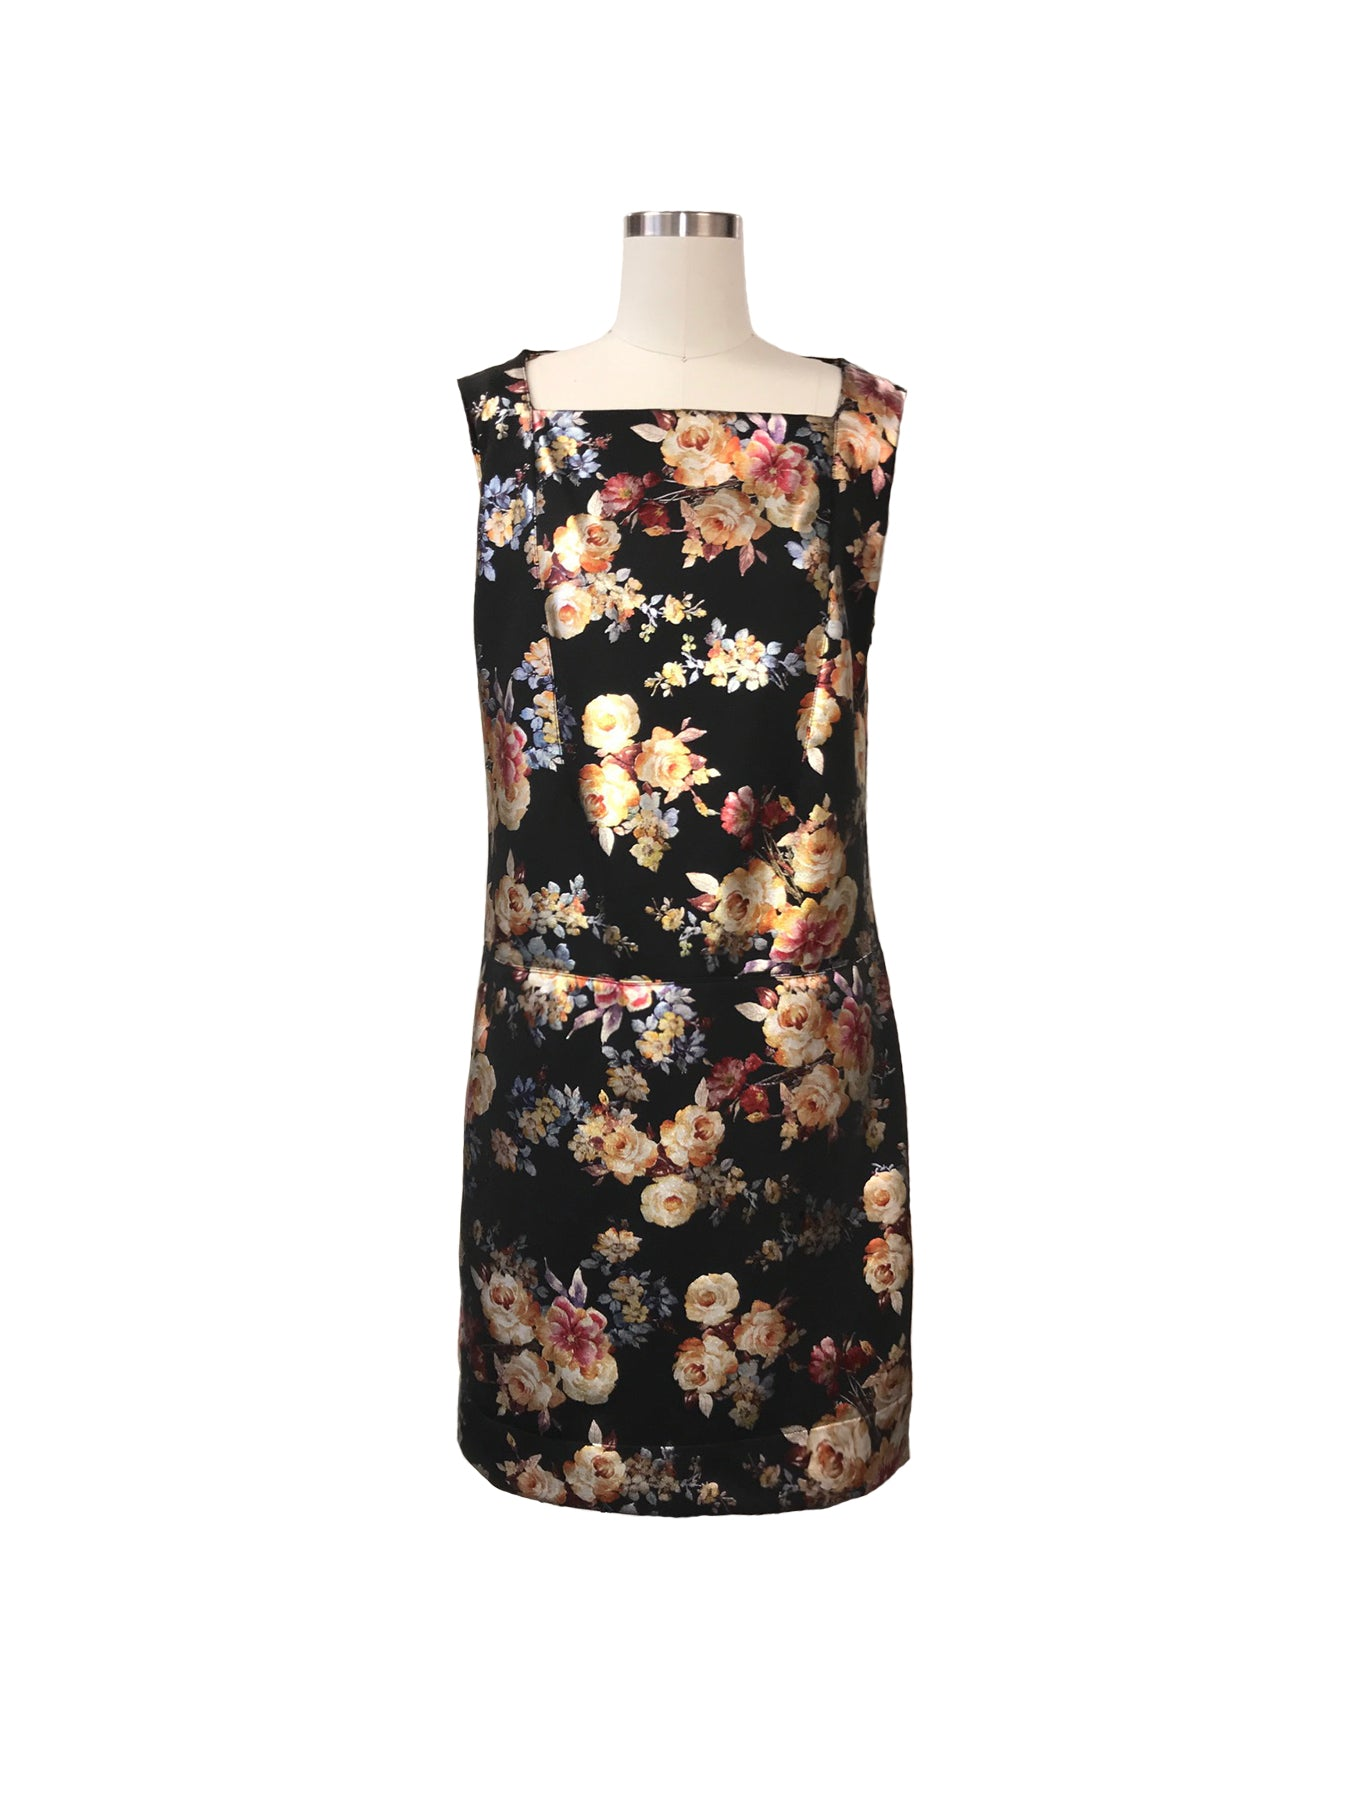 Historic New York Metallic Gold Floral Dress - Historic New York